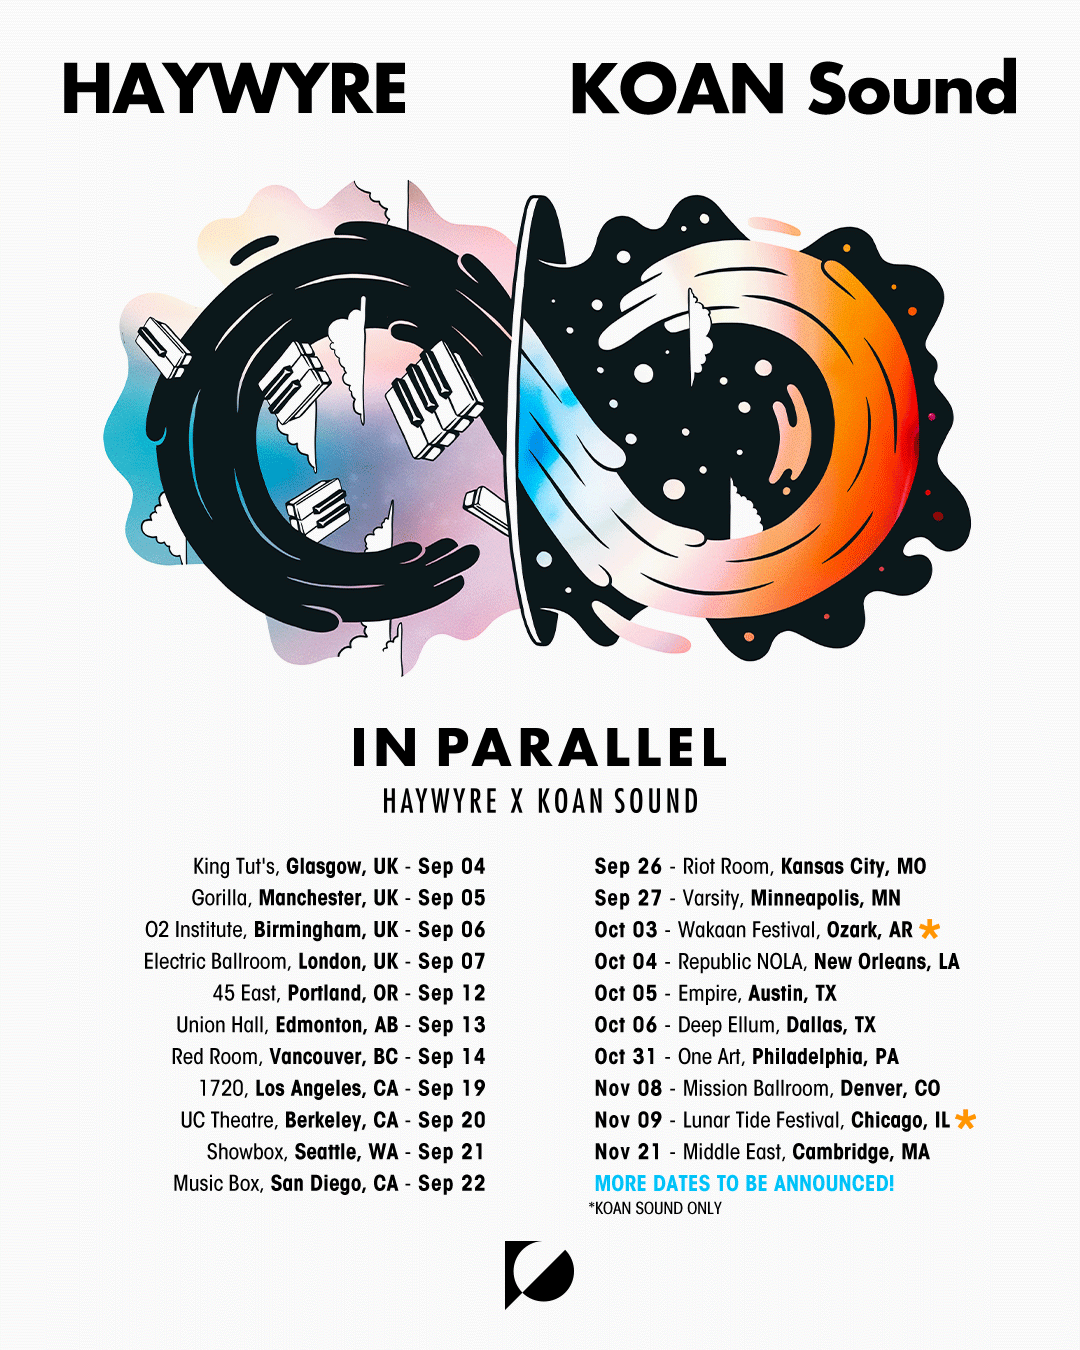 KOAN Sound 'In Parallel' with Haywyre at Music Box, San Diego on 22 Sep 2019